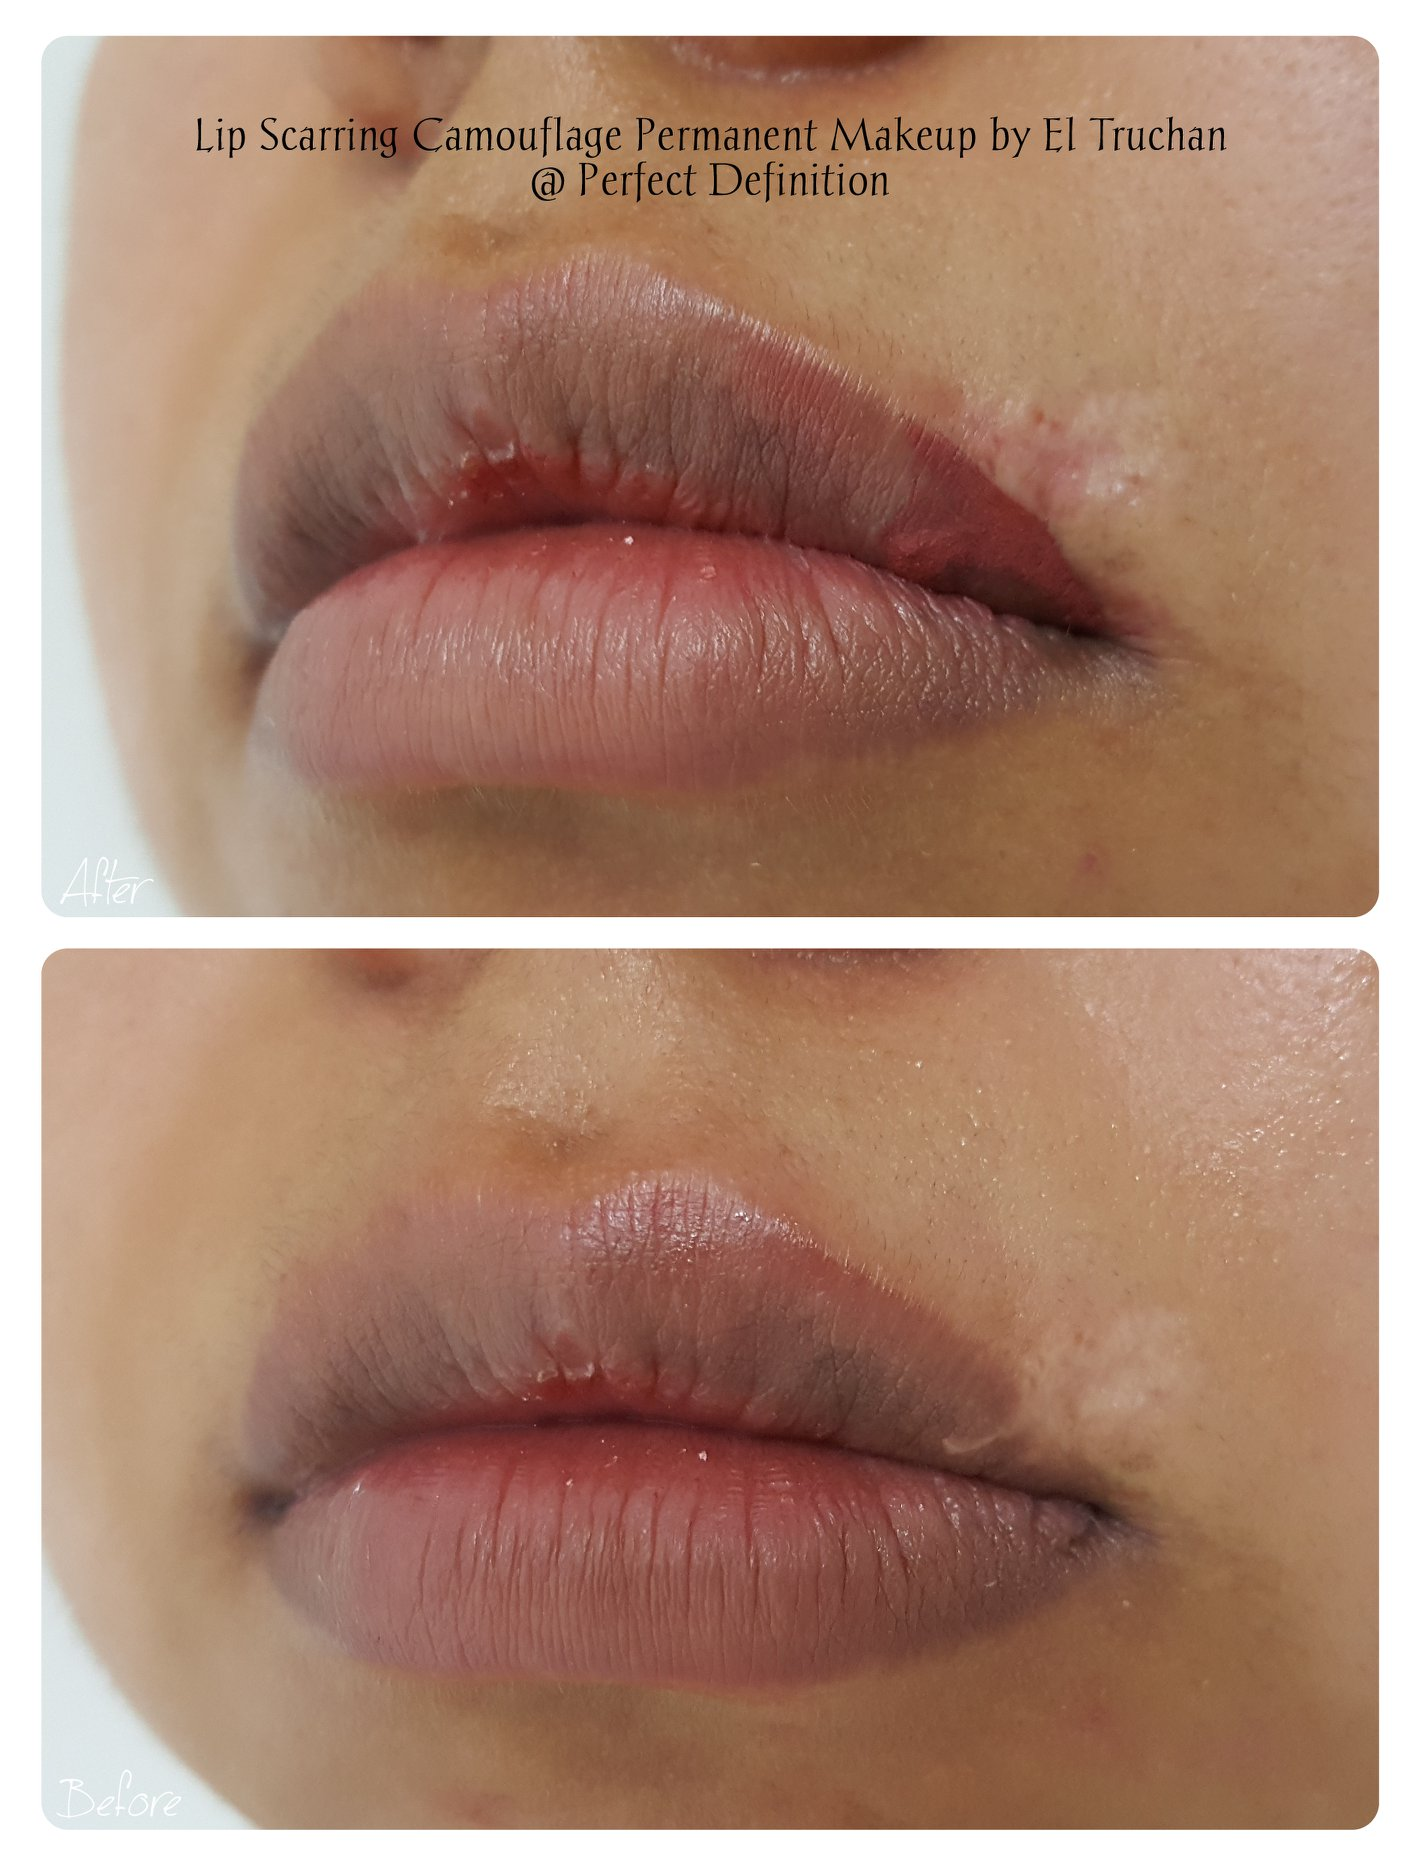 Lip Scarring Camouflage Permanent Makeup